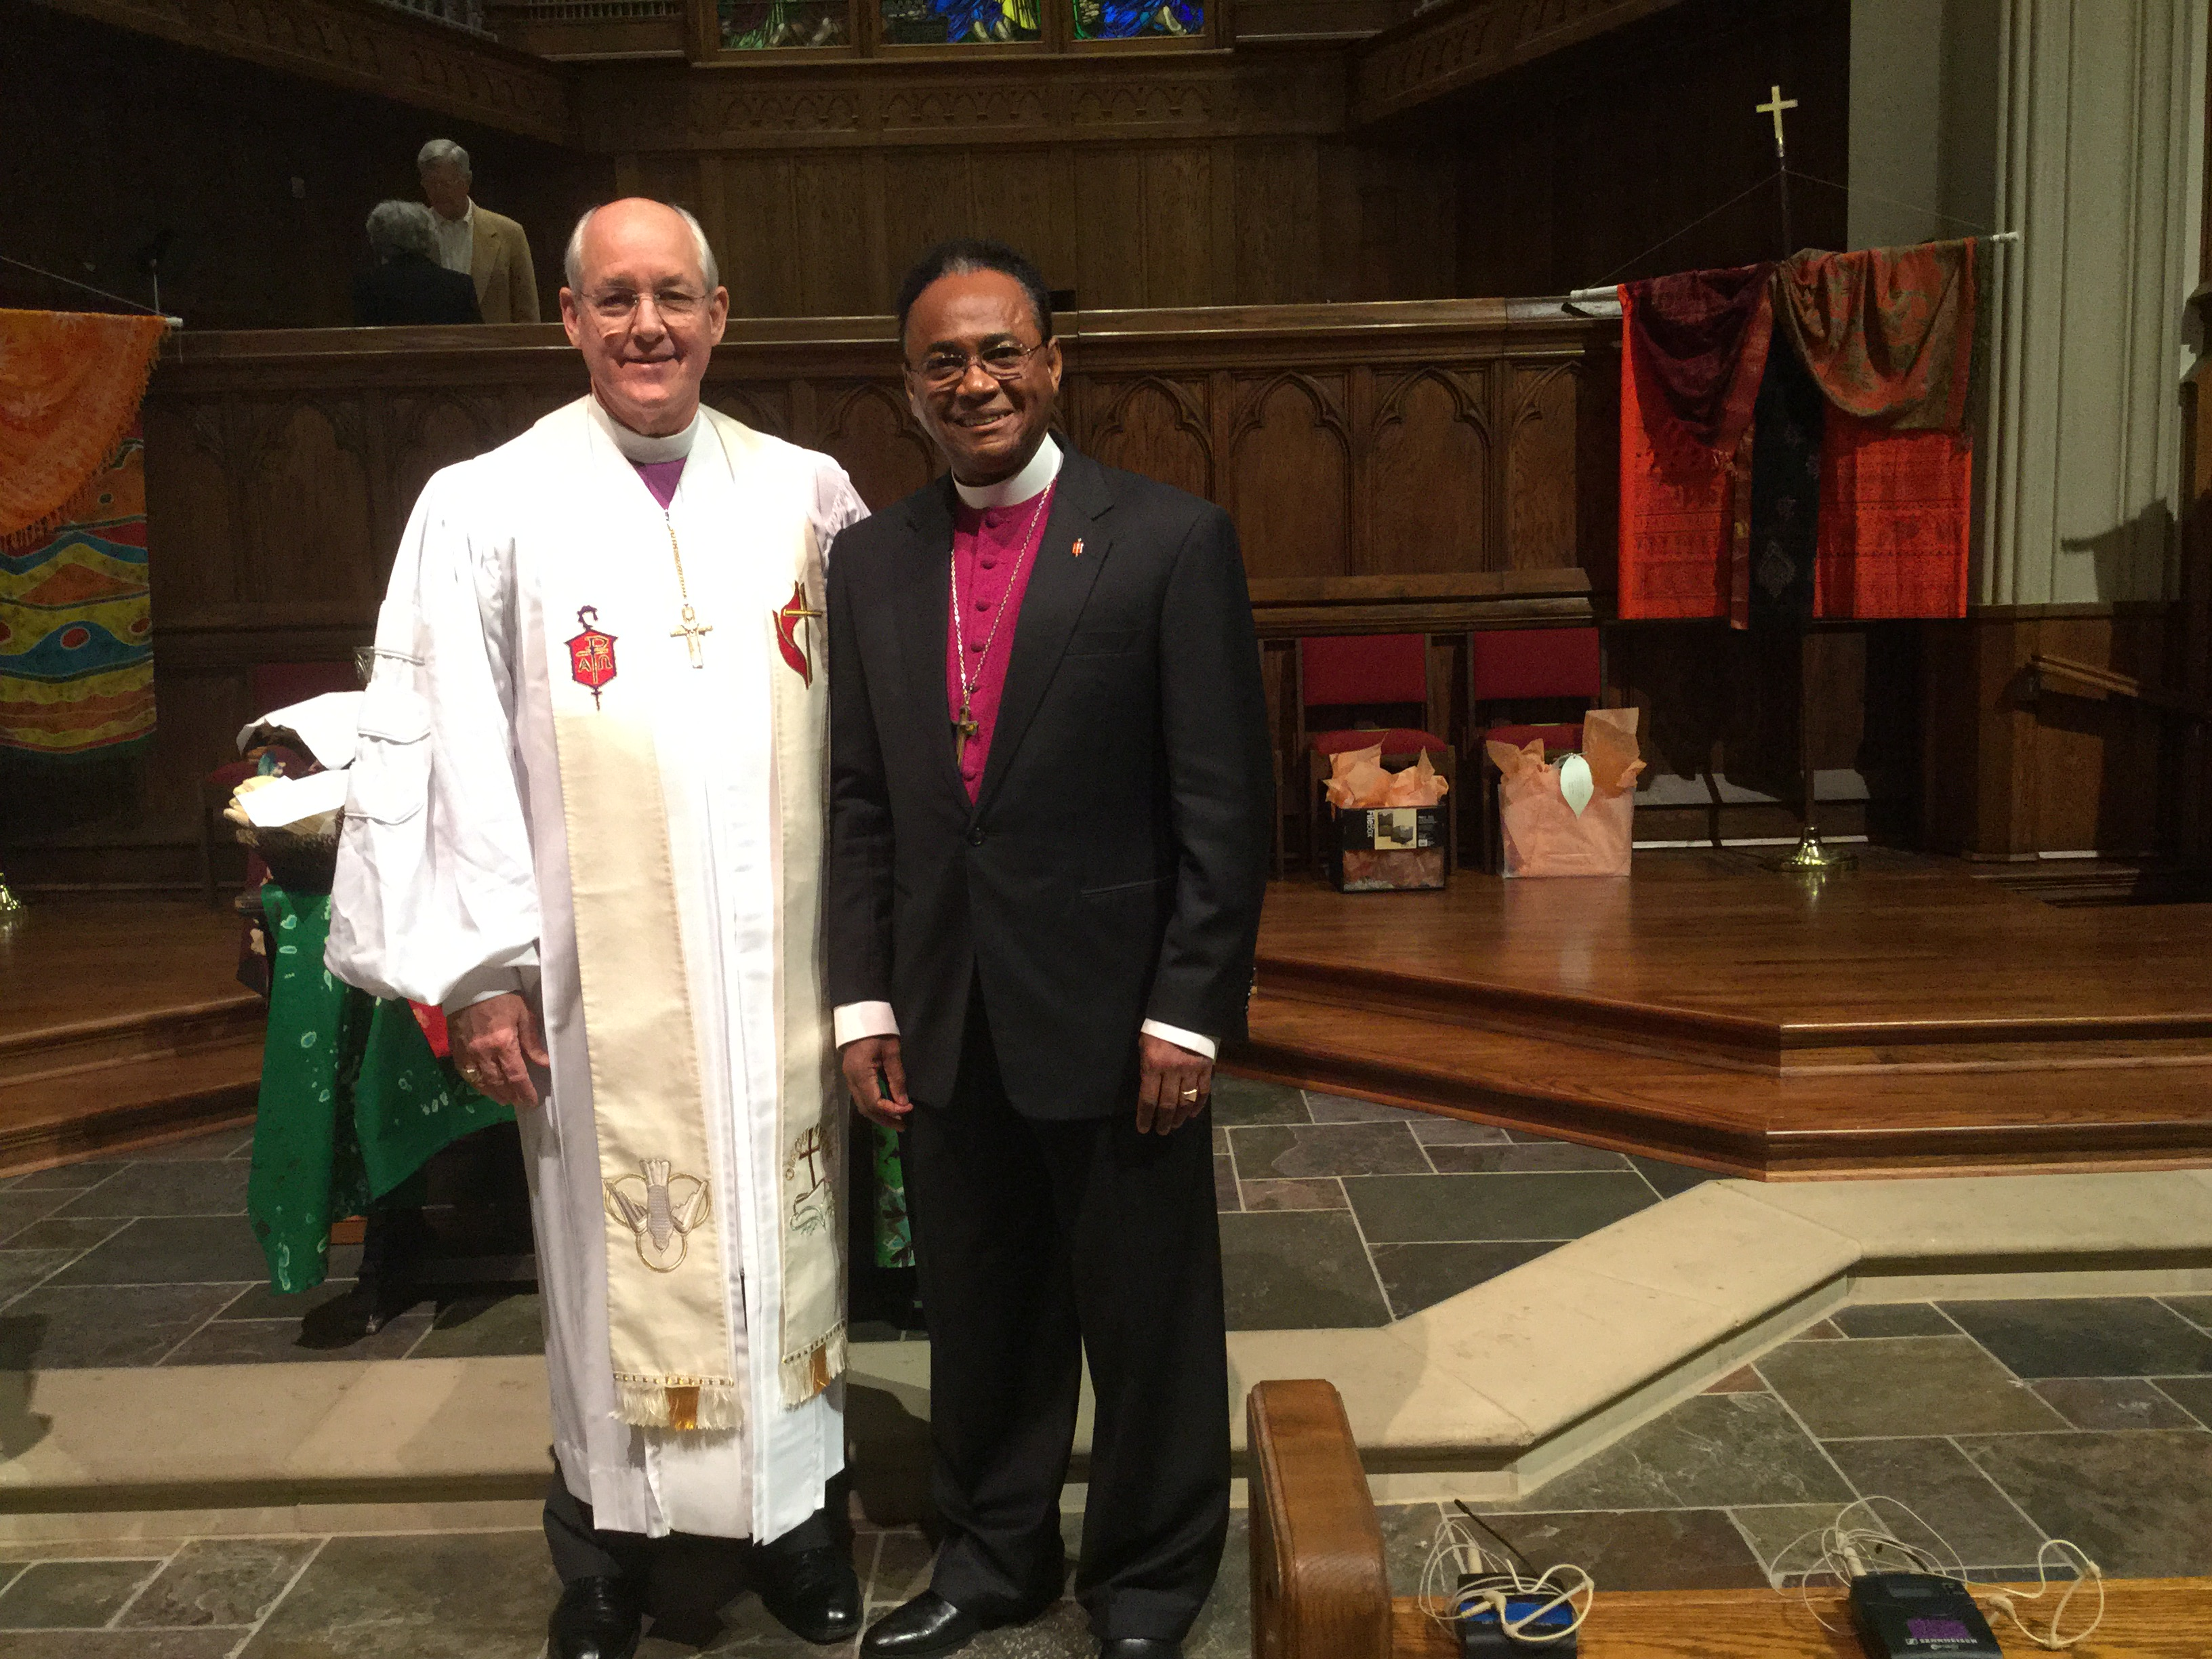 North and South GA Bishops come together for GBGM service